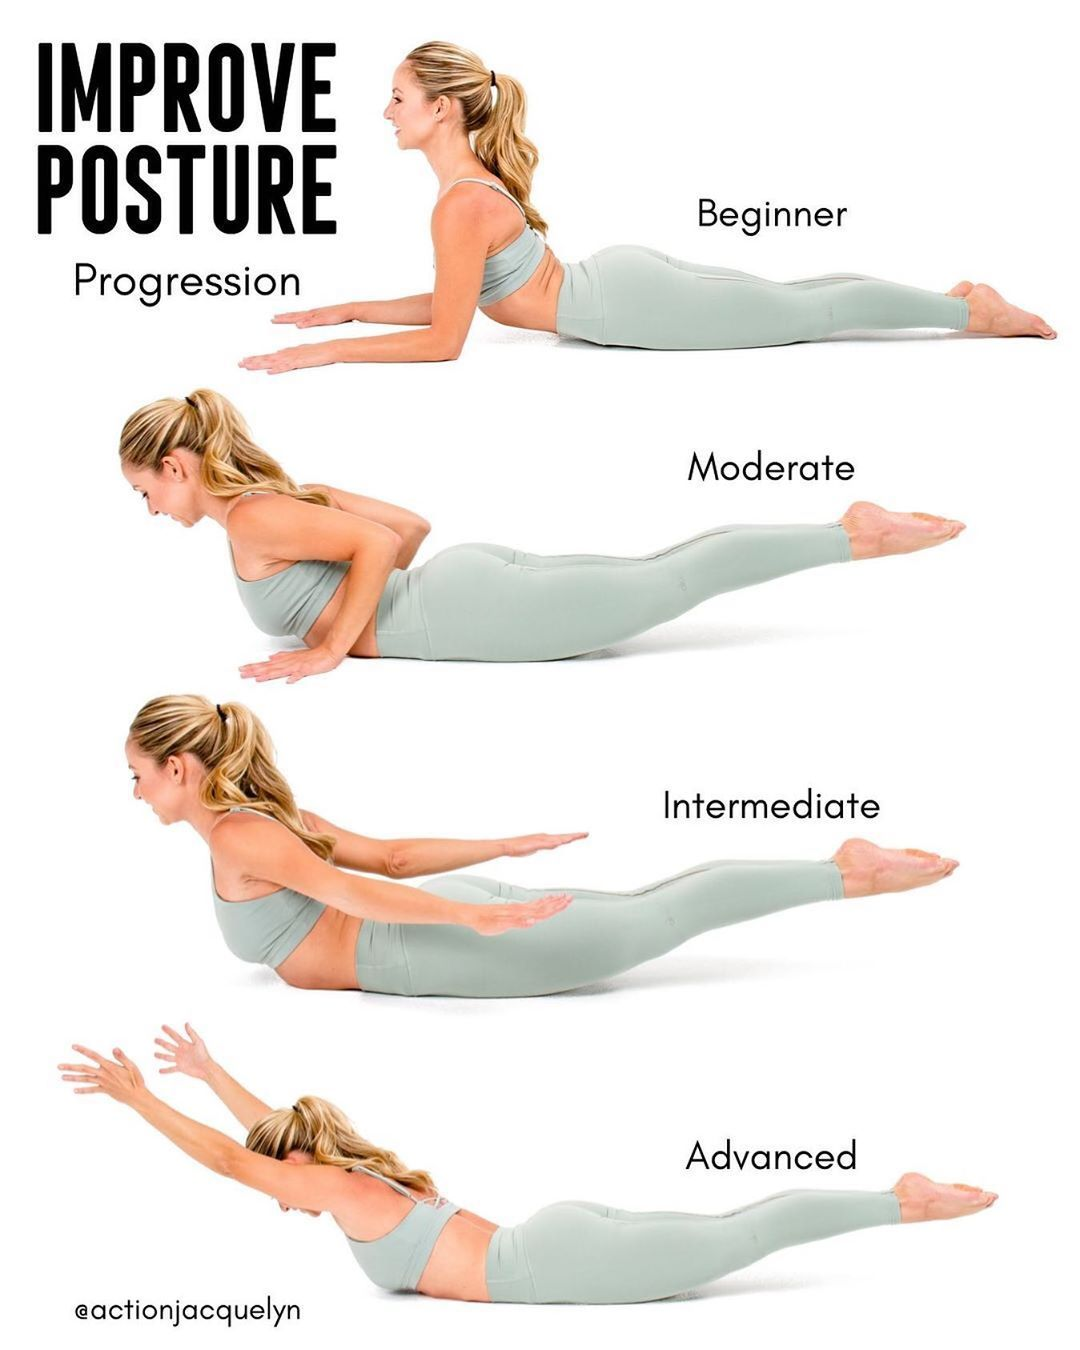 8 Yoga Poses To Strengthen Your Lower Back & Abs In Only 10 Minutes Per Day - GymGuider.com